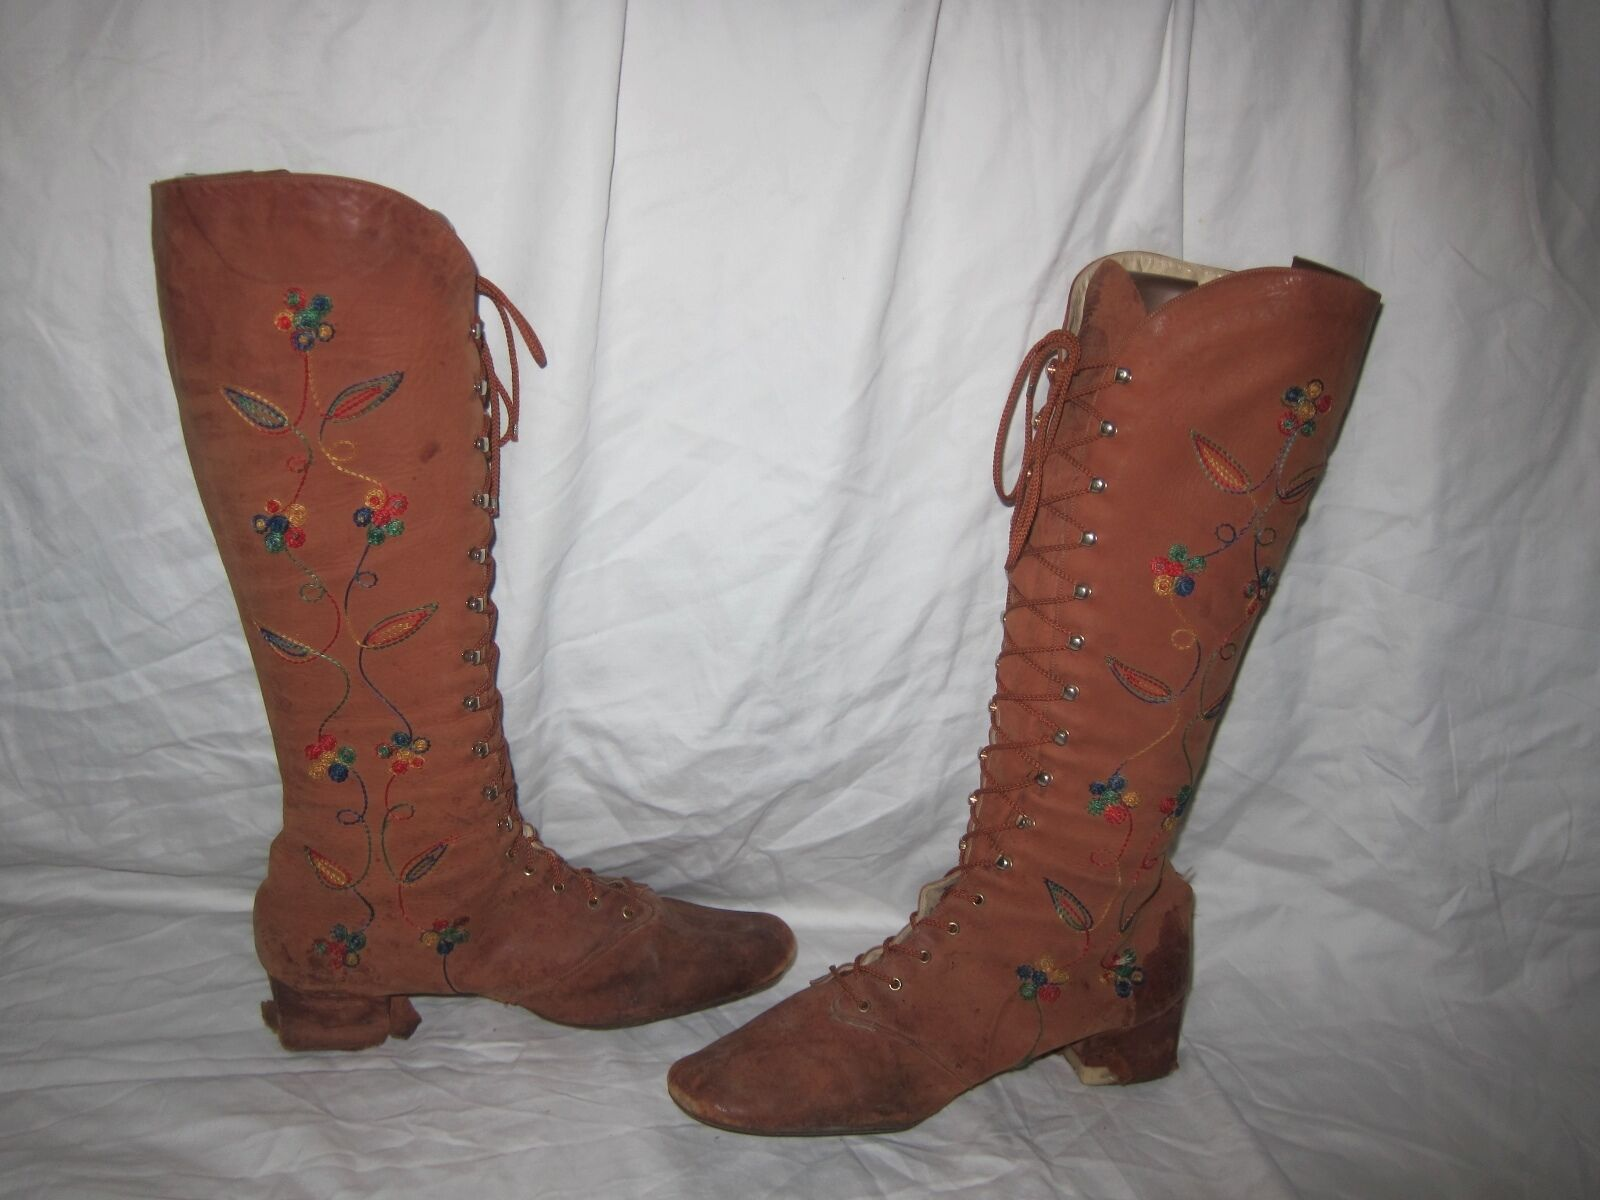 RARE Jack EMBROIDERY Rogers knee high Braun Leder Stiefel WITH EMBROIDERY Jack Floral Damenschuhe 8.5 3fc397